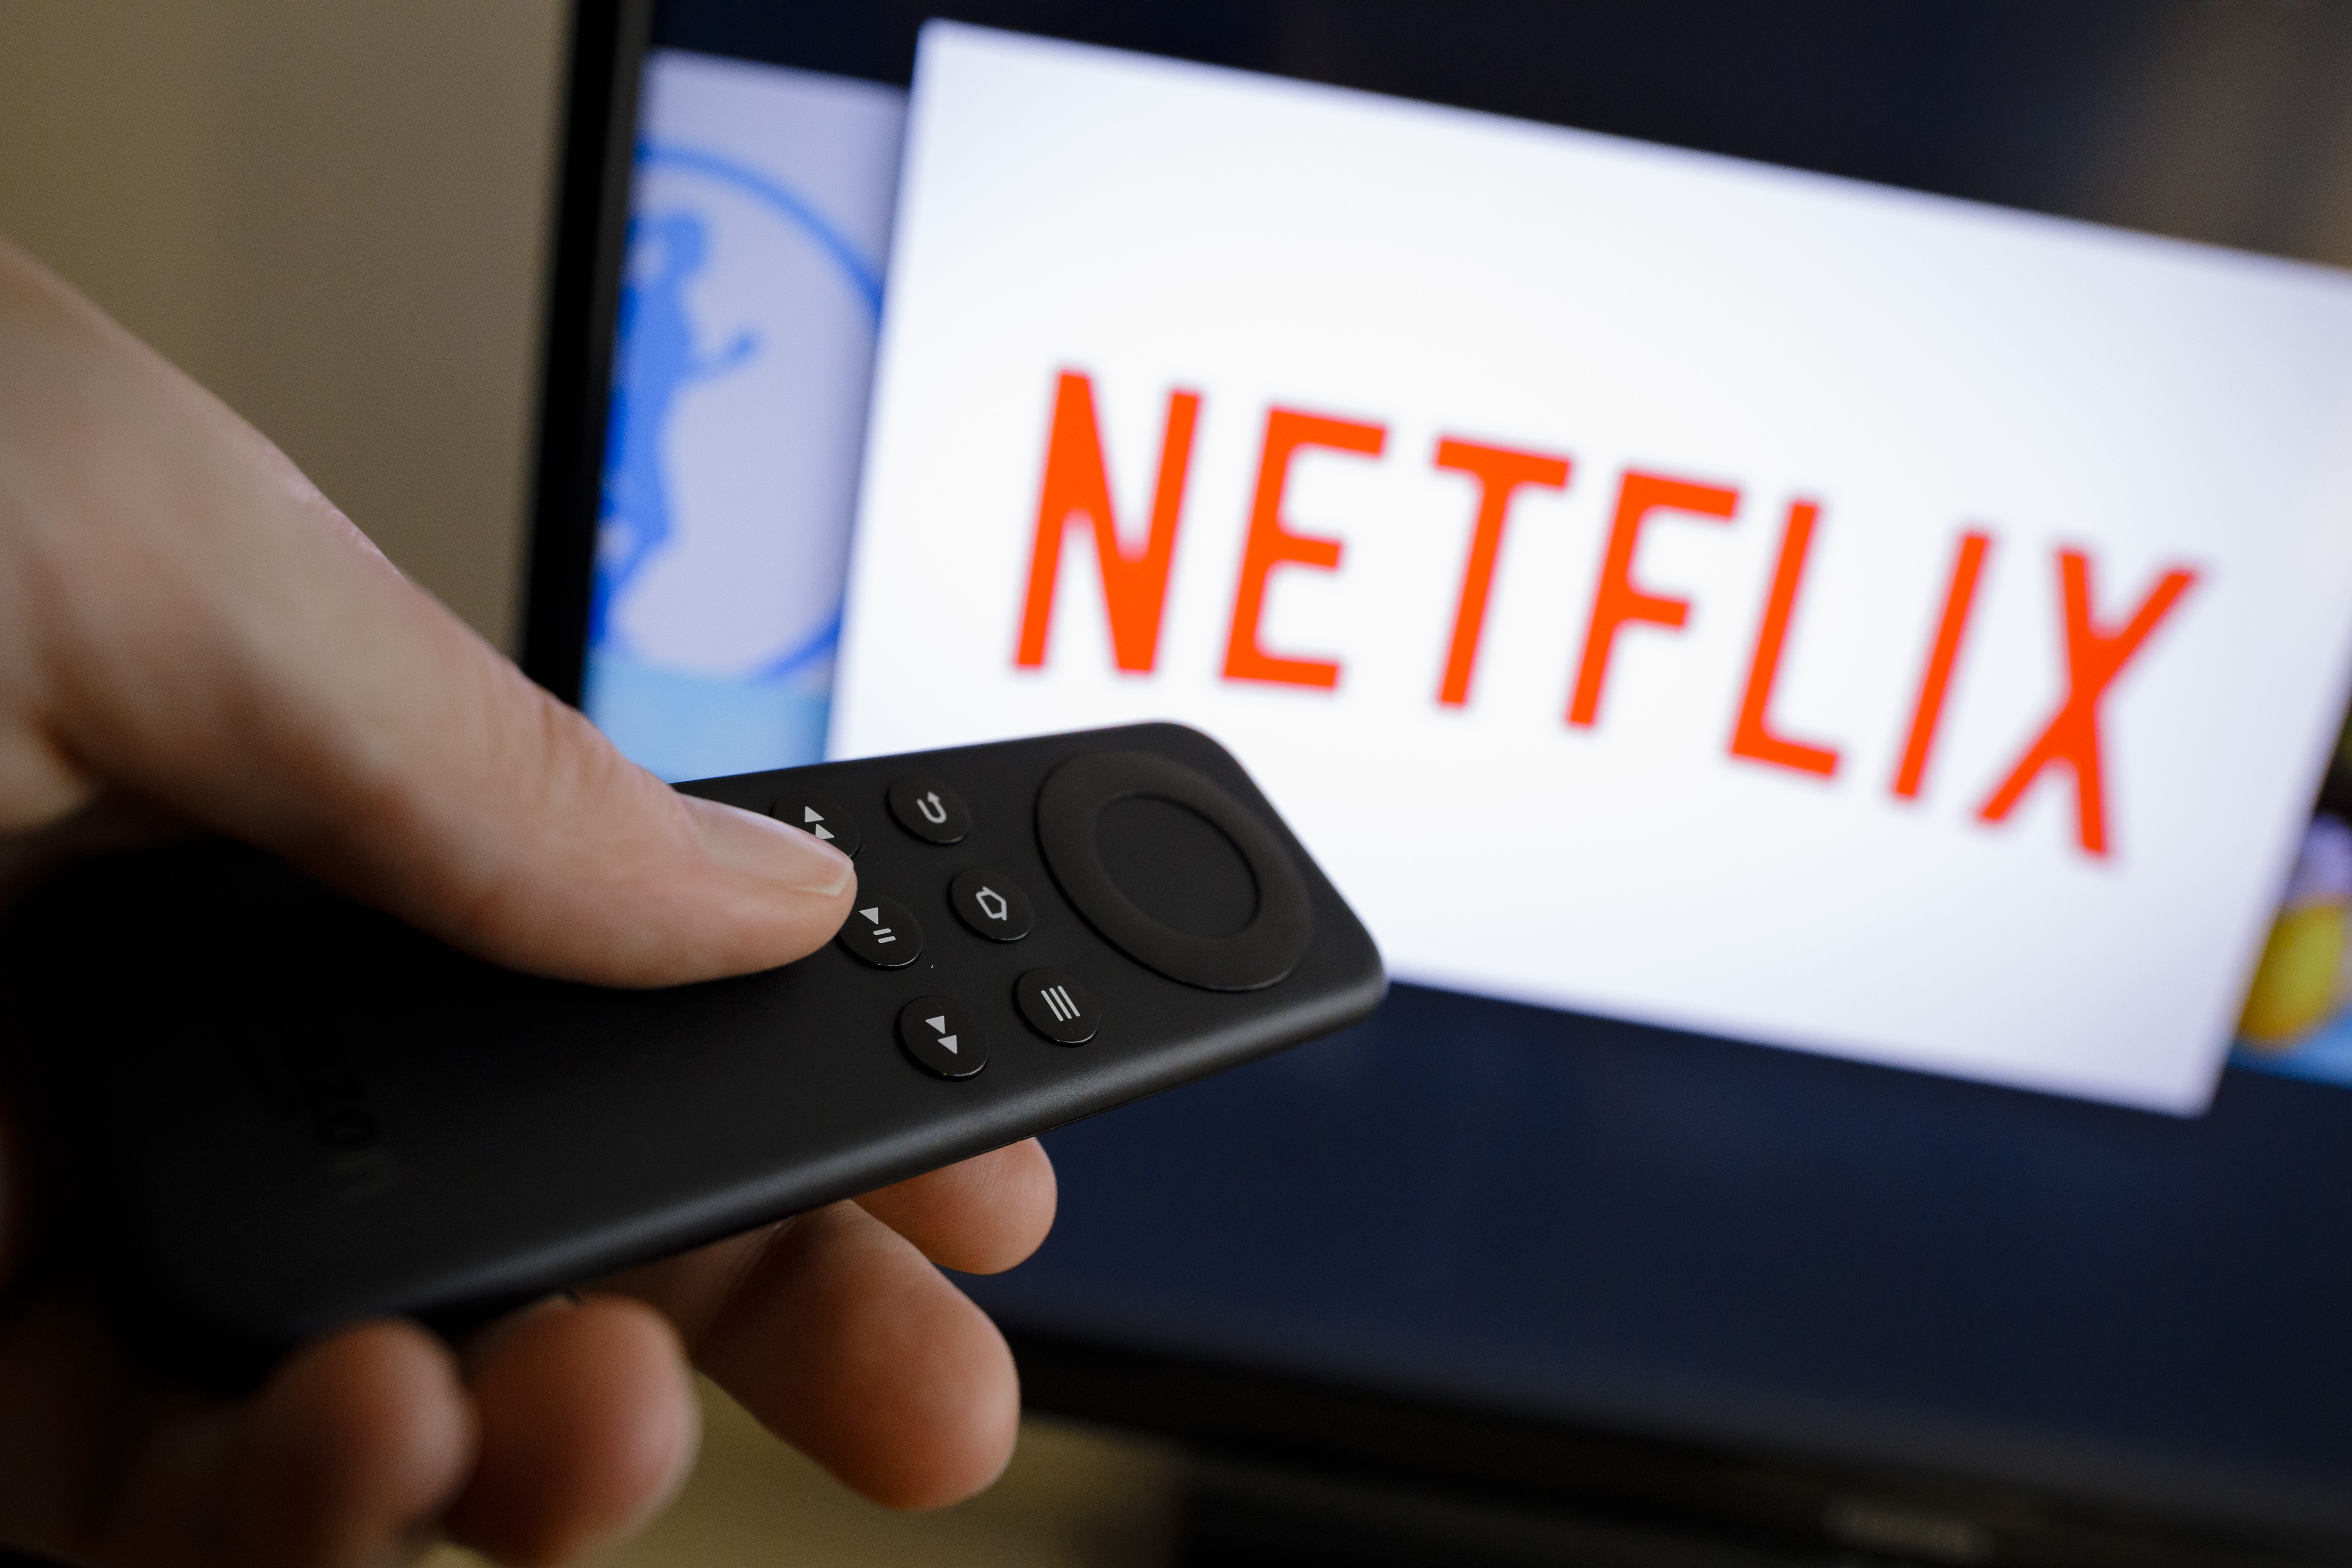 The logo of the media company Netflix can be seen on a TV on April 18, 2017 in Berlin, Germany.